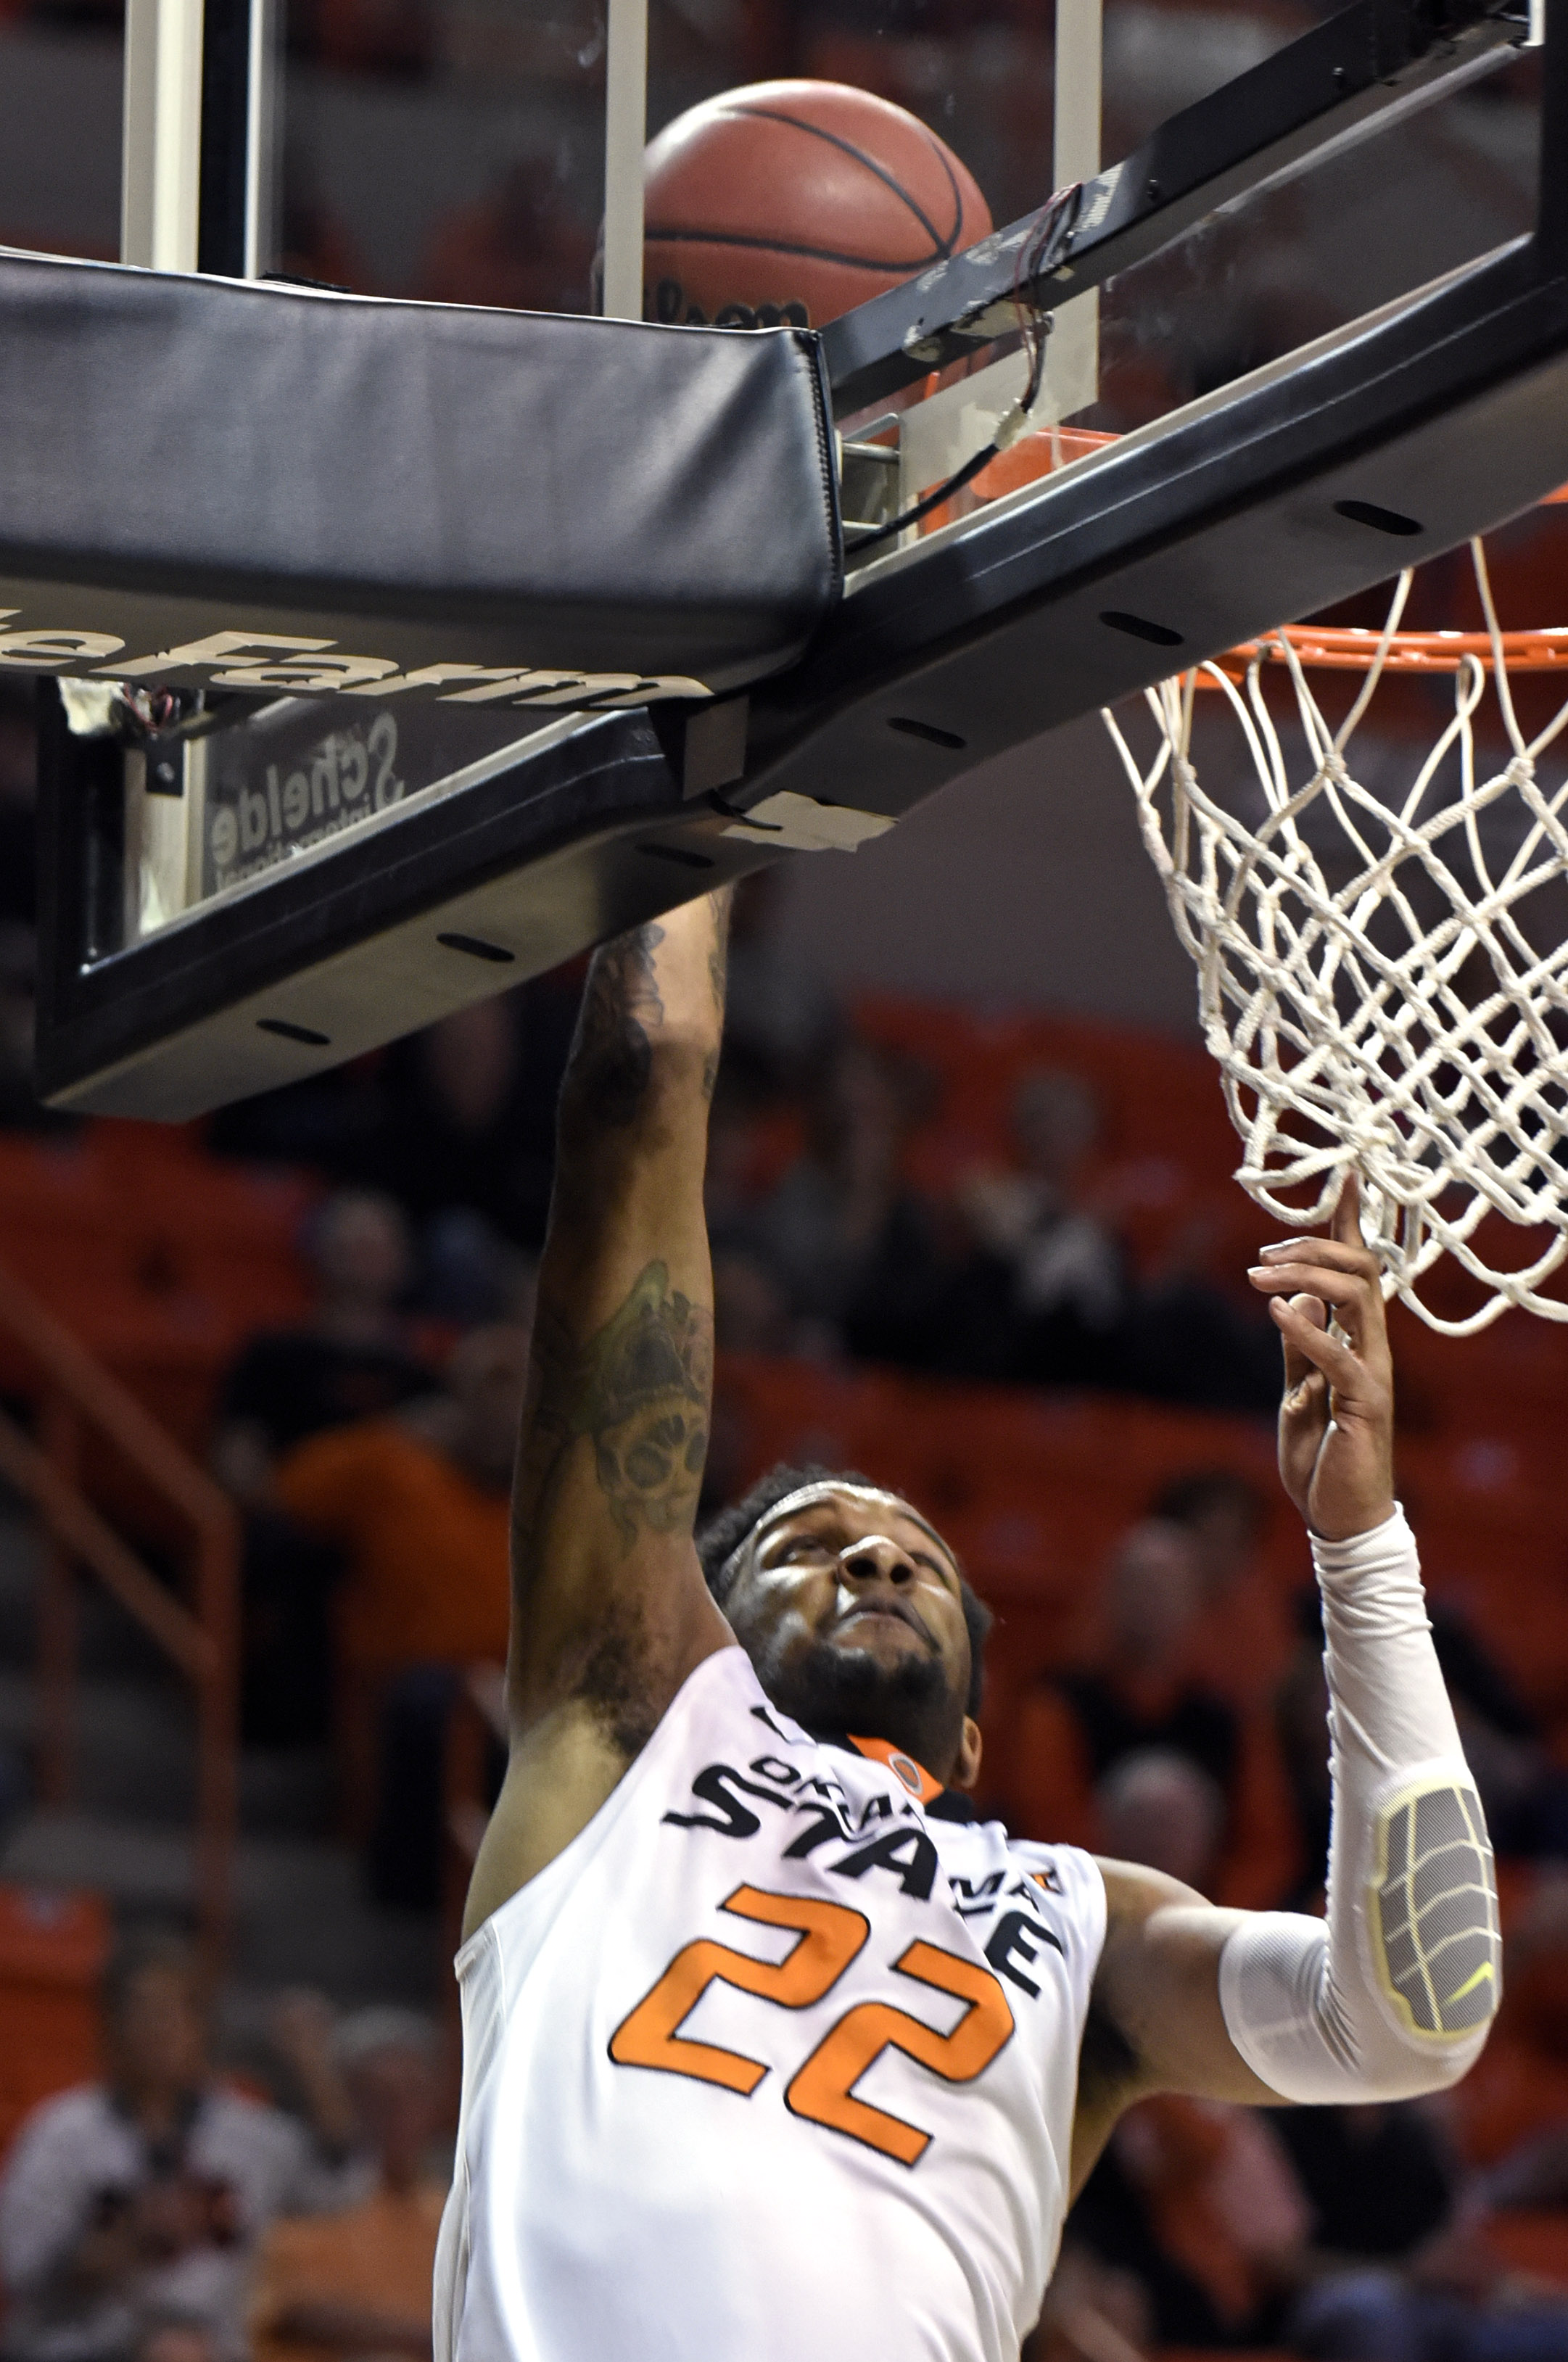 Oklahoma State guard Jeff Newberry makes a basket in the first half of an NCAA college basketball game against West Virginia in Stillwater, Okla., Saturday, Feb. 27, 2016. (AP Photo/Brody Schmidt)